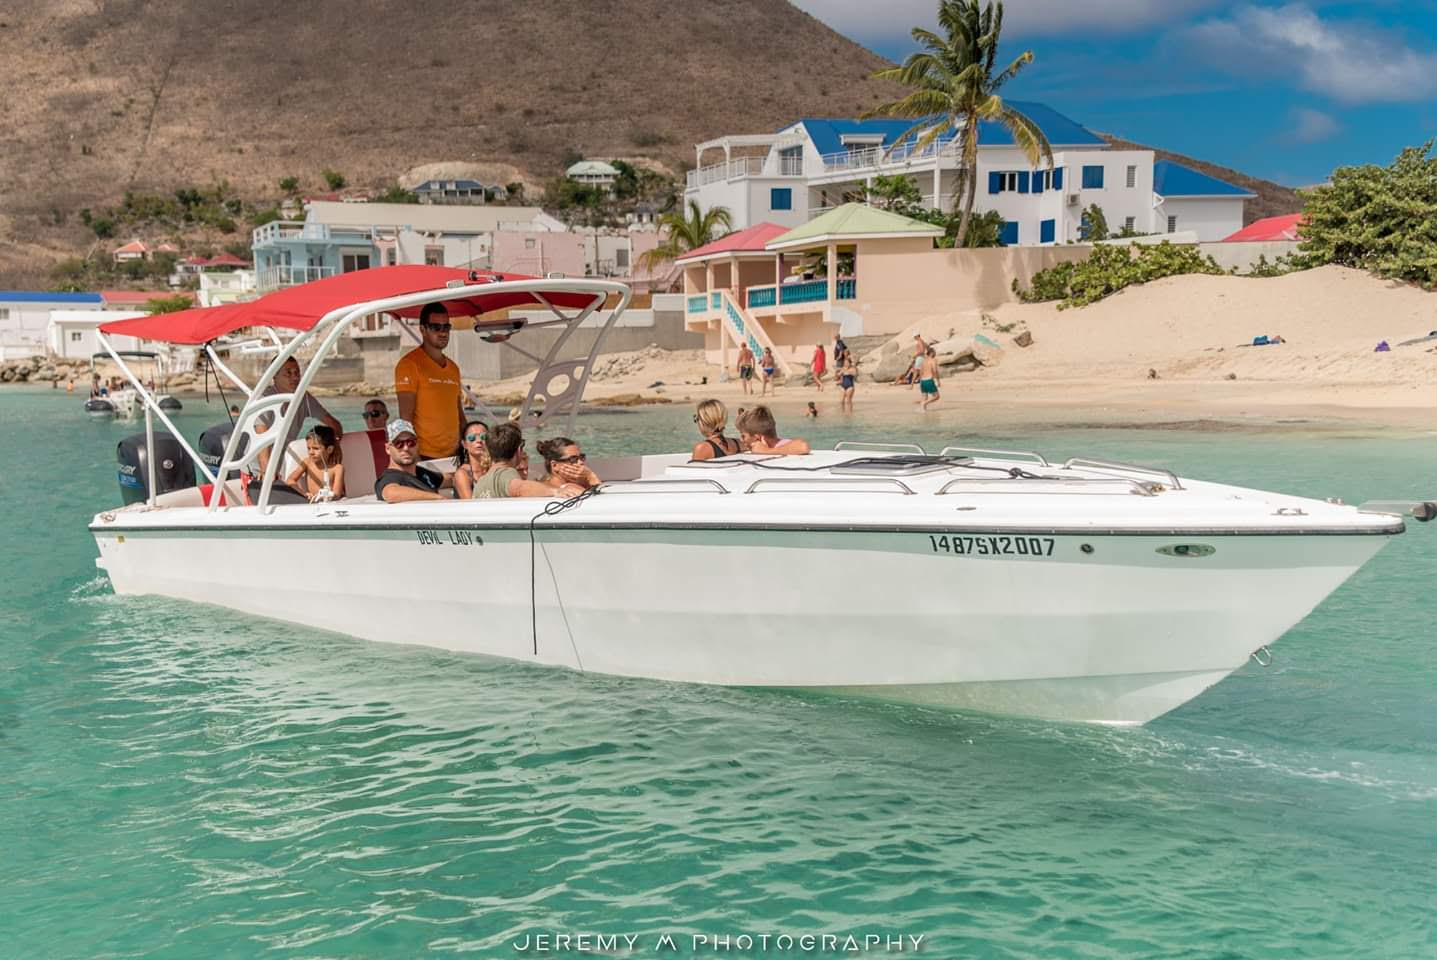 POWERBOAT ADVENTURES | St Maarten Boat Charters & Private Tours